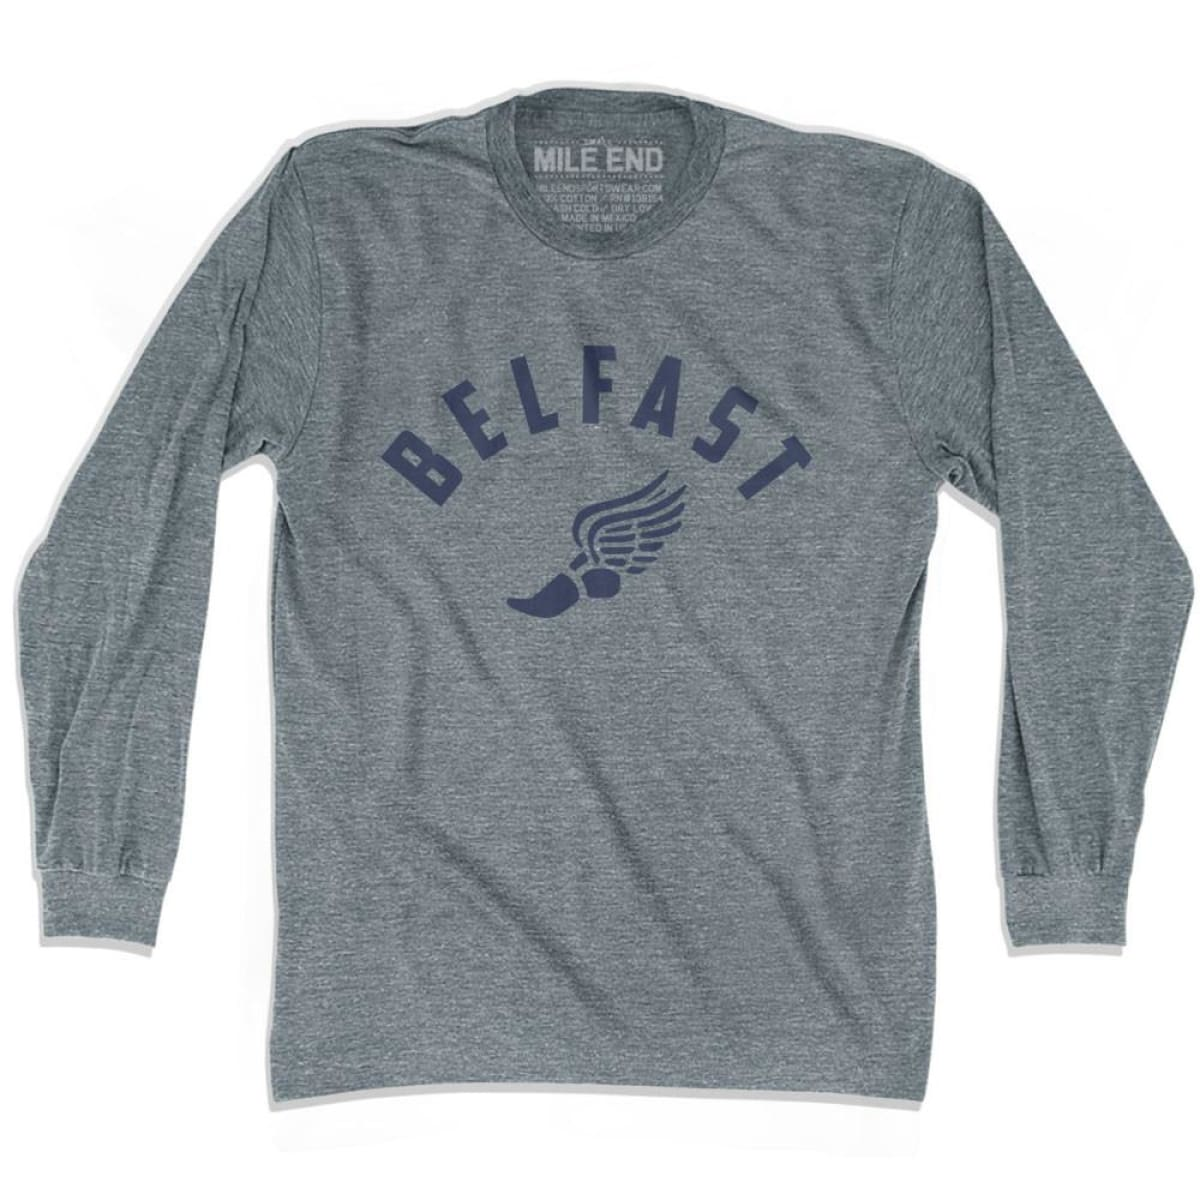 Belfast Track Long Sleeve T-shirt - Athletic Grey / Adult X-Small - Mile End Track